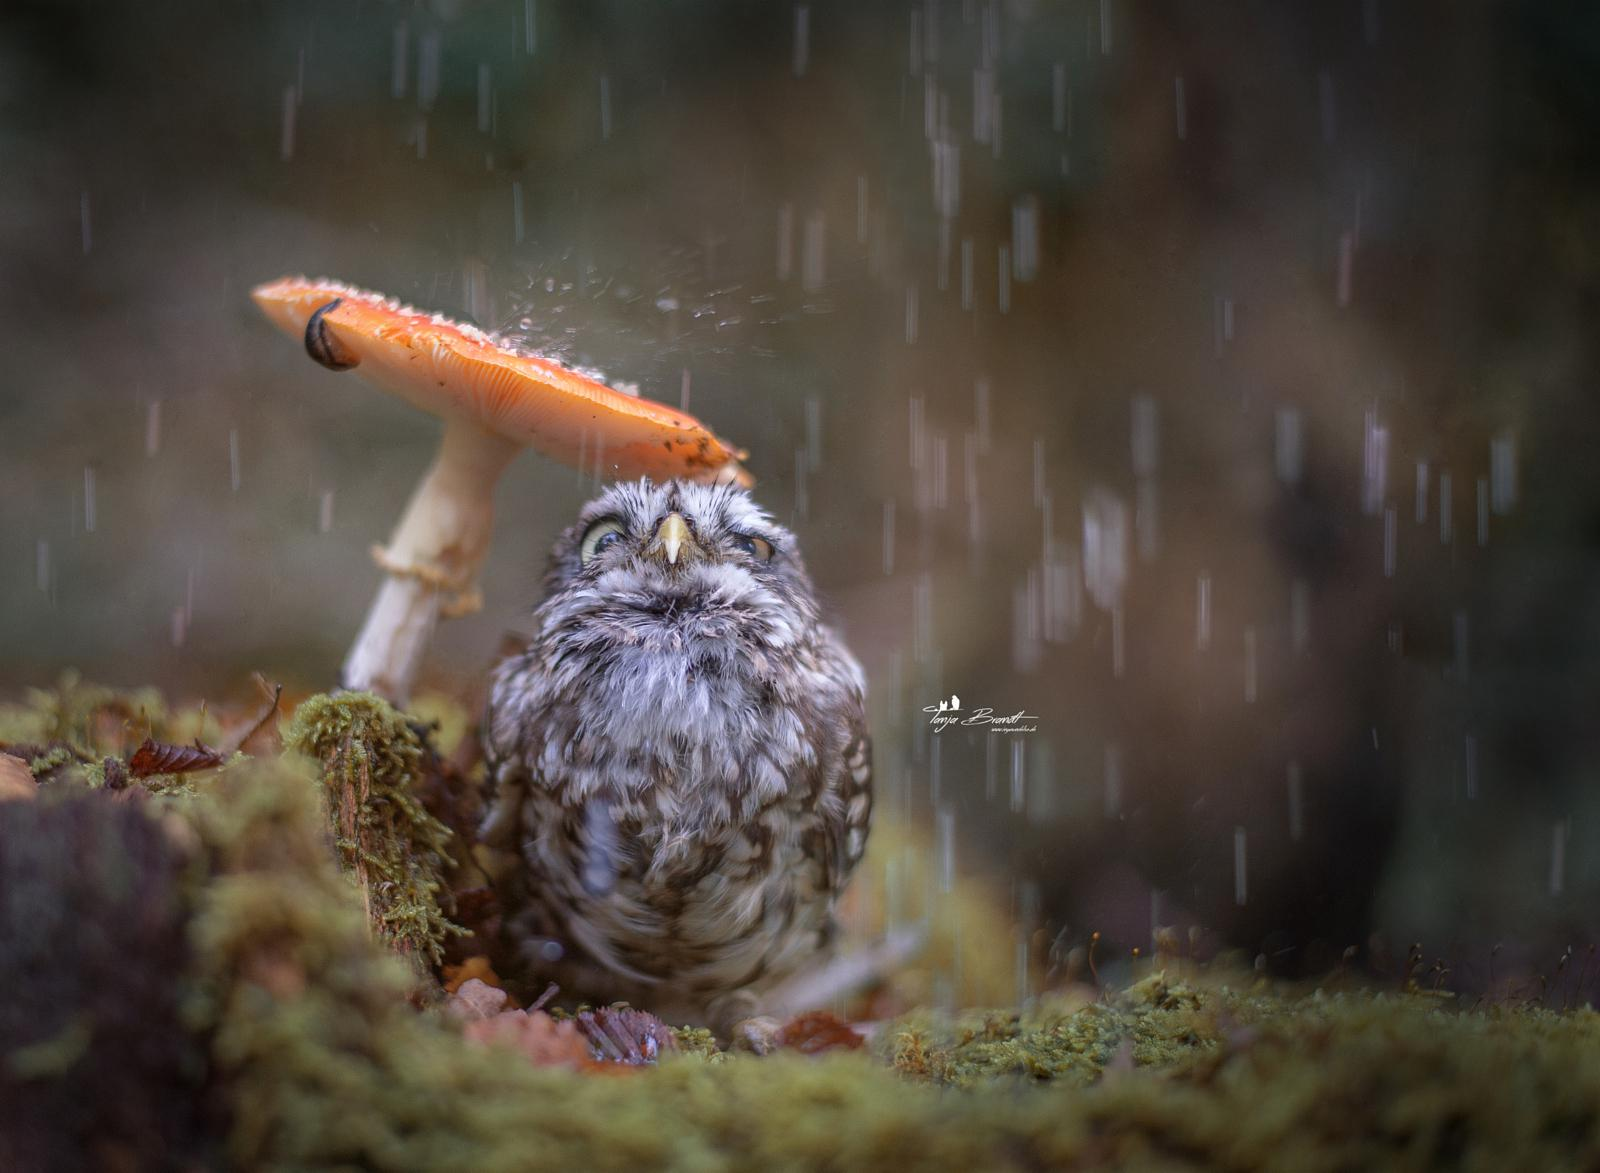 Owl using a mushroom to stay out of the rain